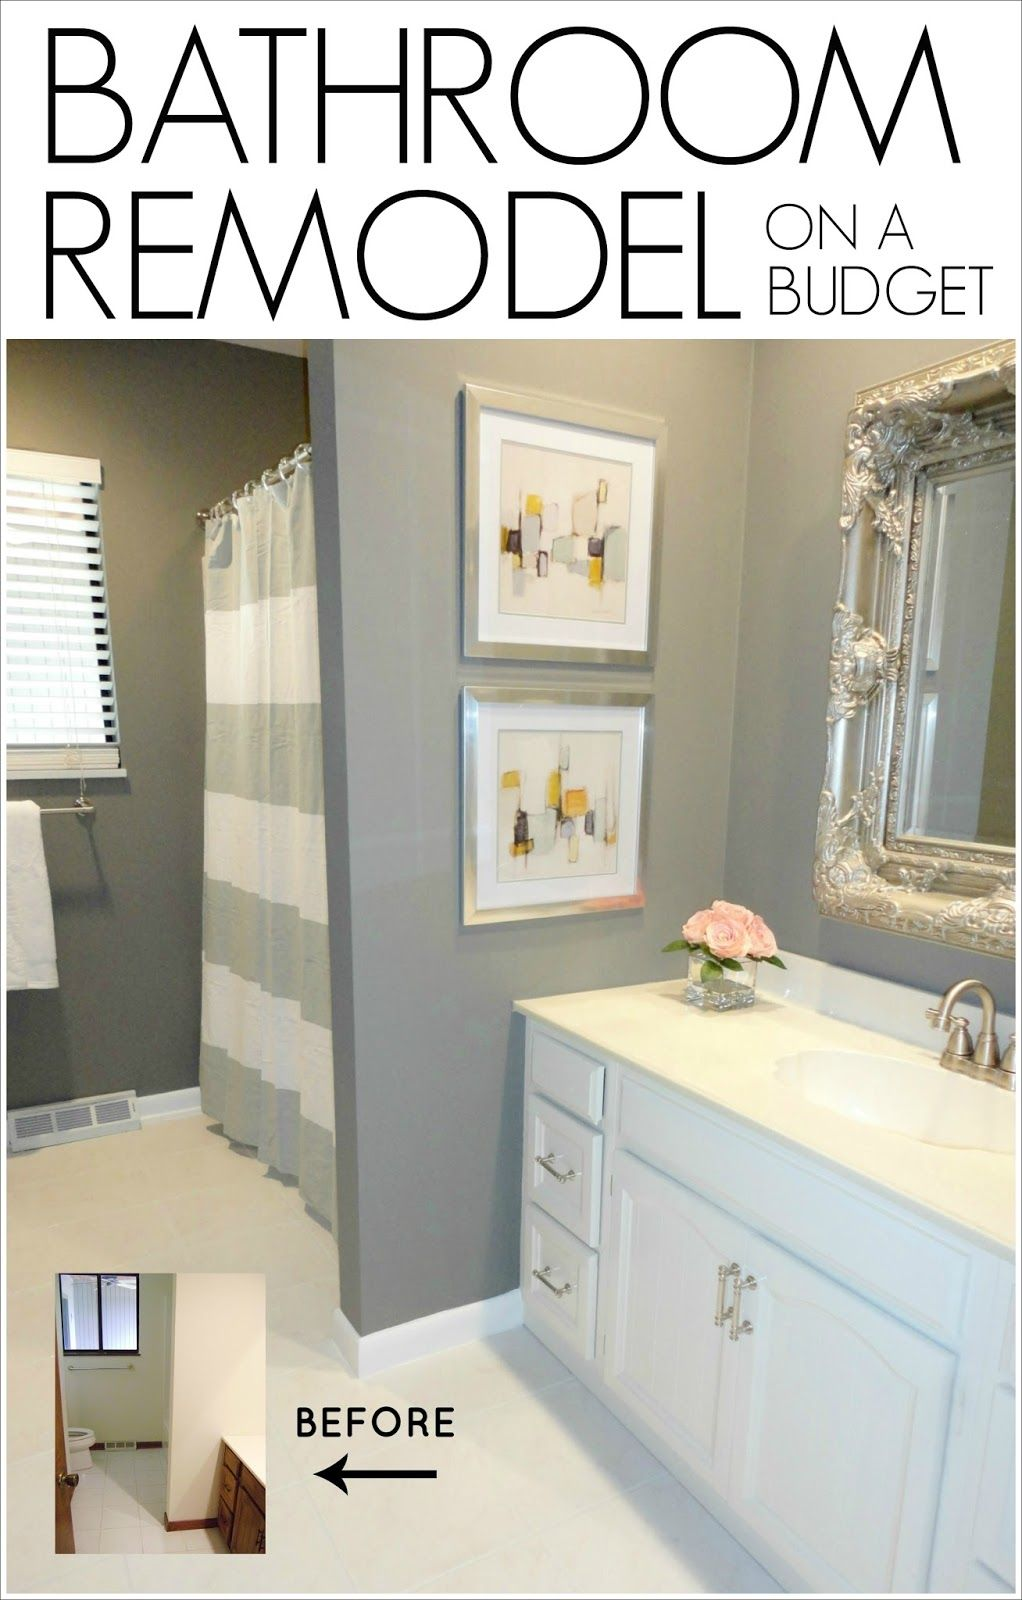 diy bathroom remodel on a budget see how this blogger completely rh pinterest com Bathroom Renovations On a Budget Small Bathroom Makeovers On a Budget